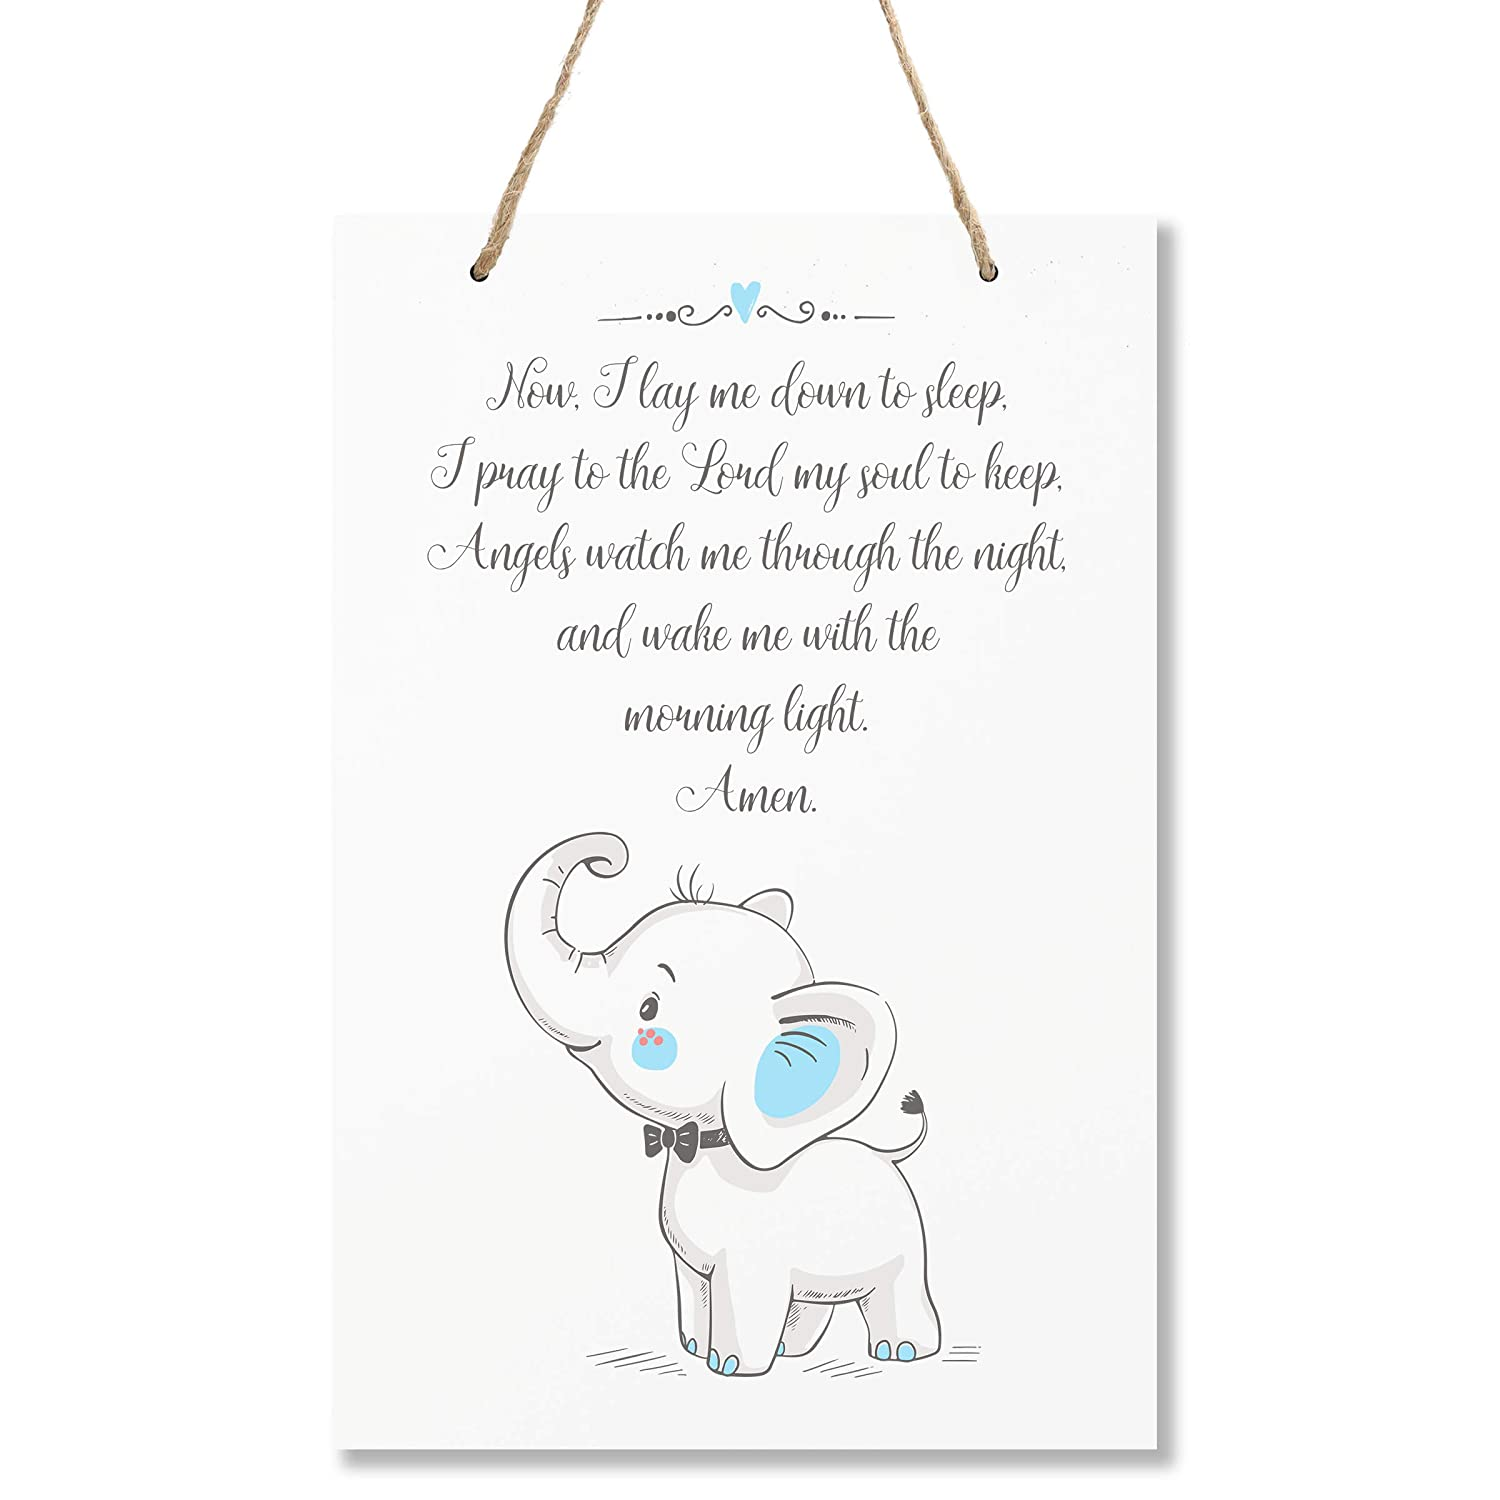 "LifeSong Milestones Elephant Wall Decor Decorations signs for Kids, Bedroom, Nursery, Hallways, Baby's Boys and Girls room, Toddlers size 8"" x 12"" Proudly Made in USA (Now I lay me down to sleep blue)"